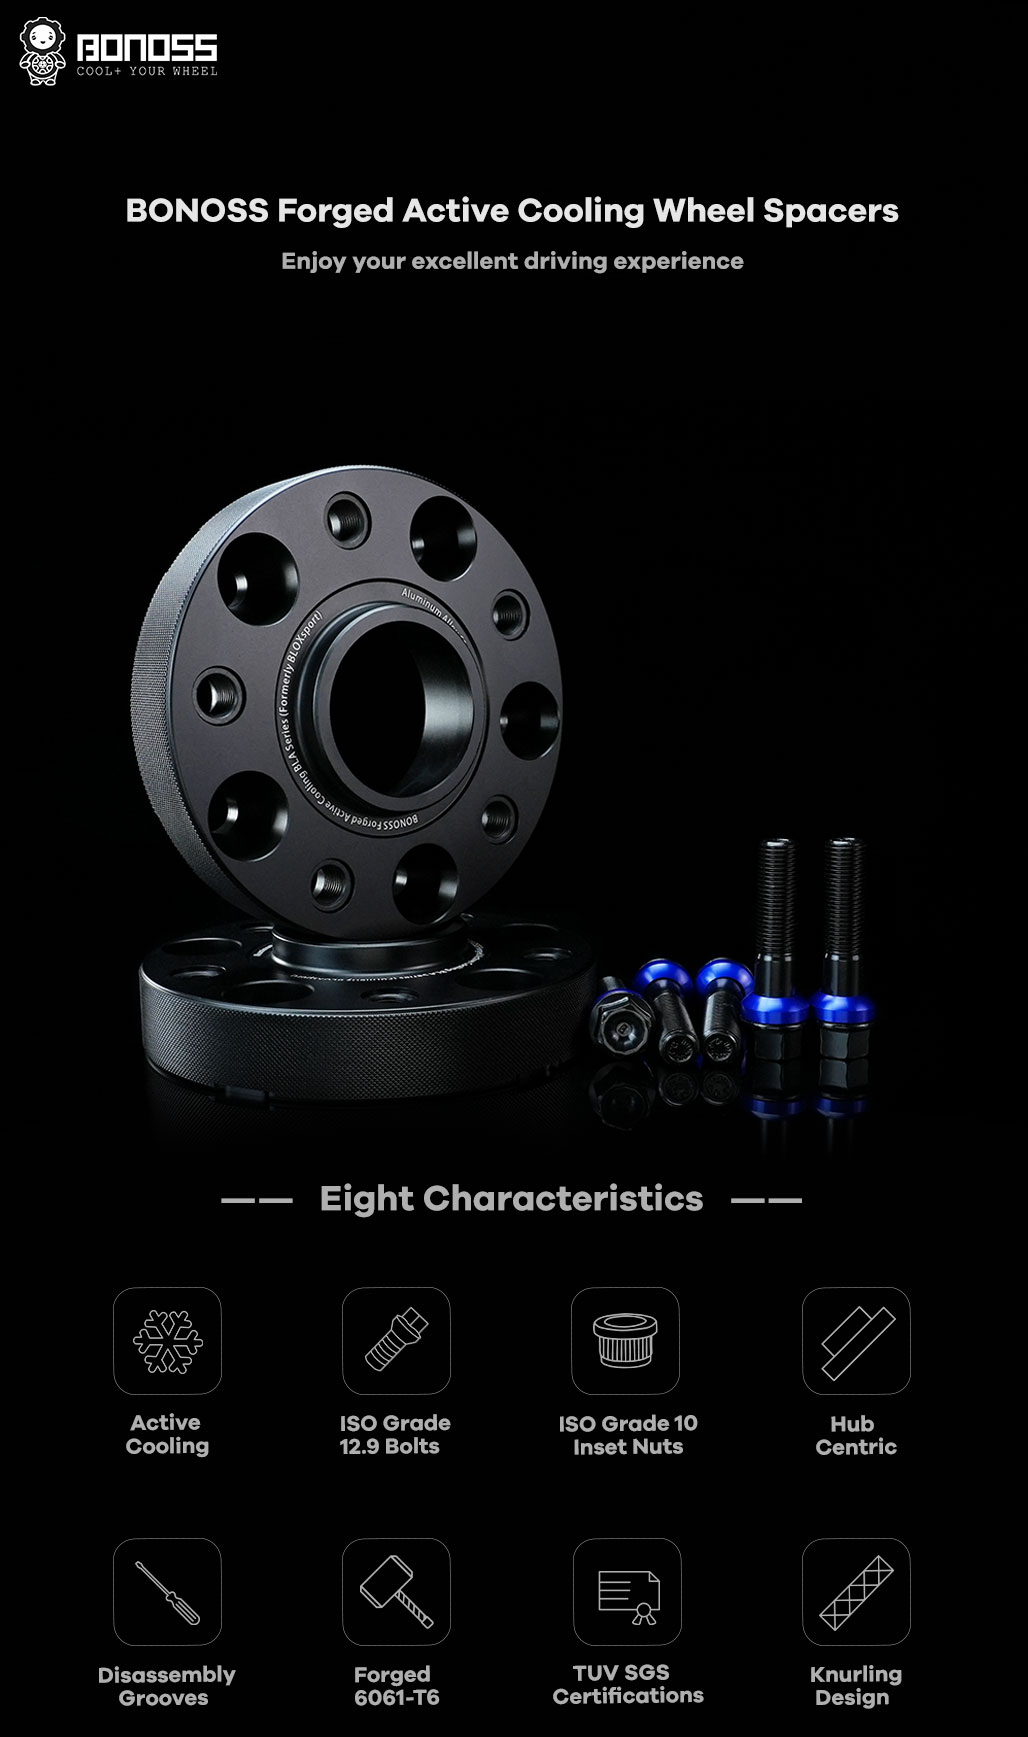 BONOSS-forged-active-cooling-wheel-spacer-Mercedes-W463-5x130-84.1-M14x1.5-6061T6-by-grace-1